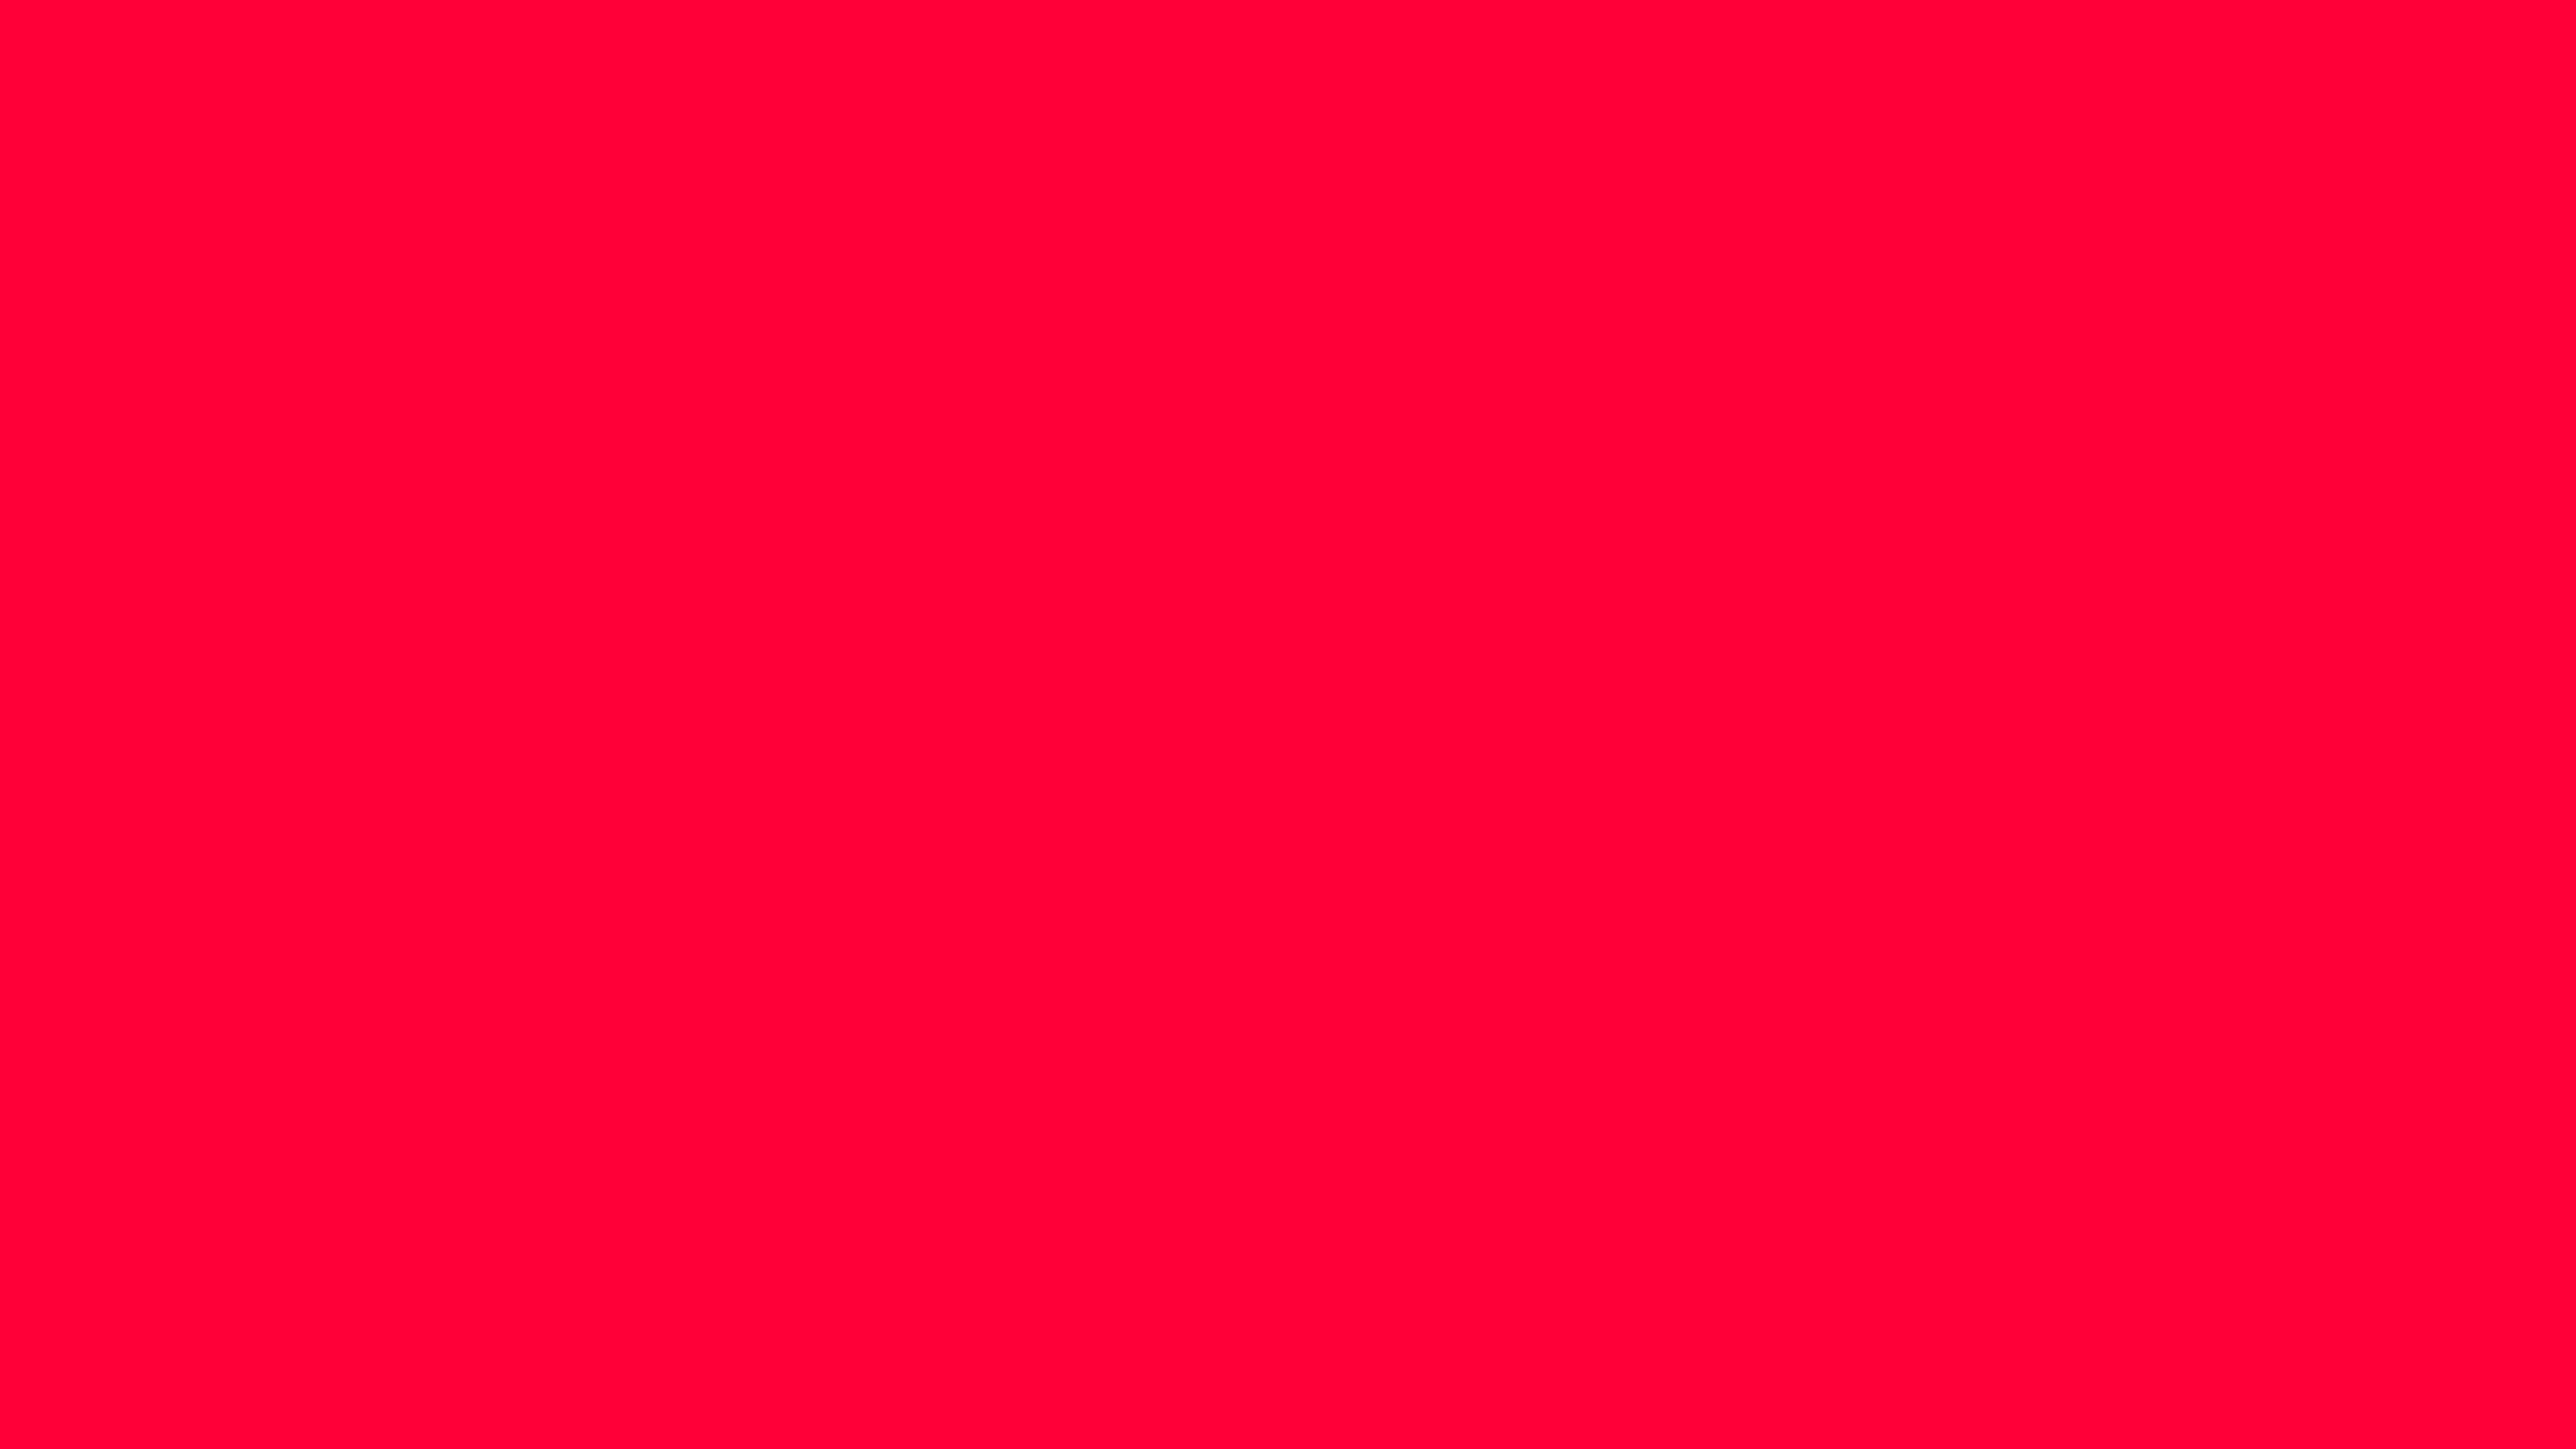 5120x2880 Carmine Red Solid Color Background